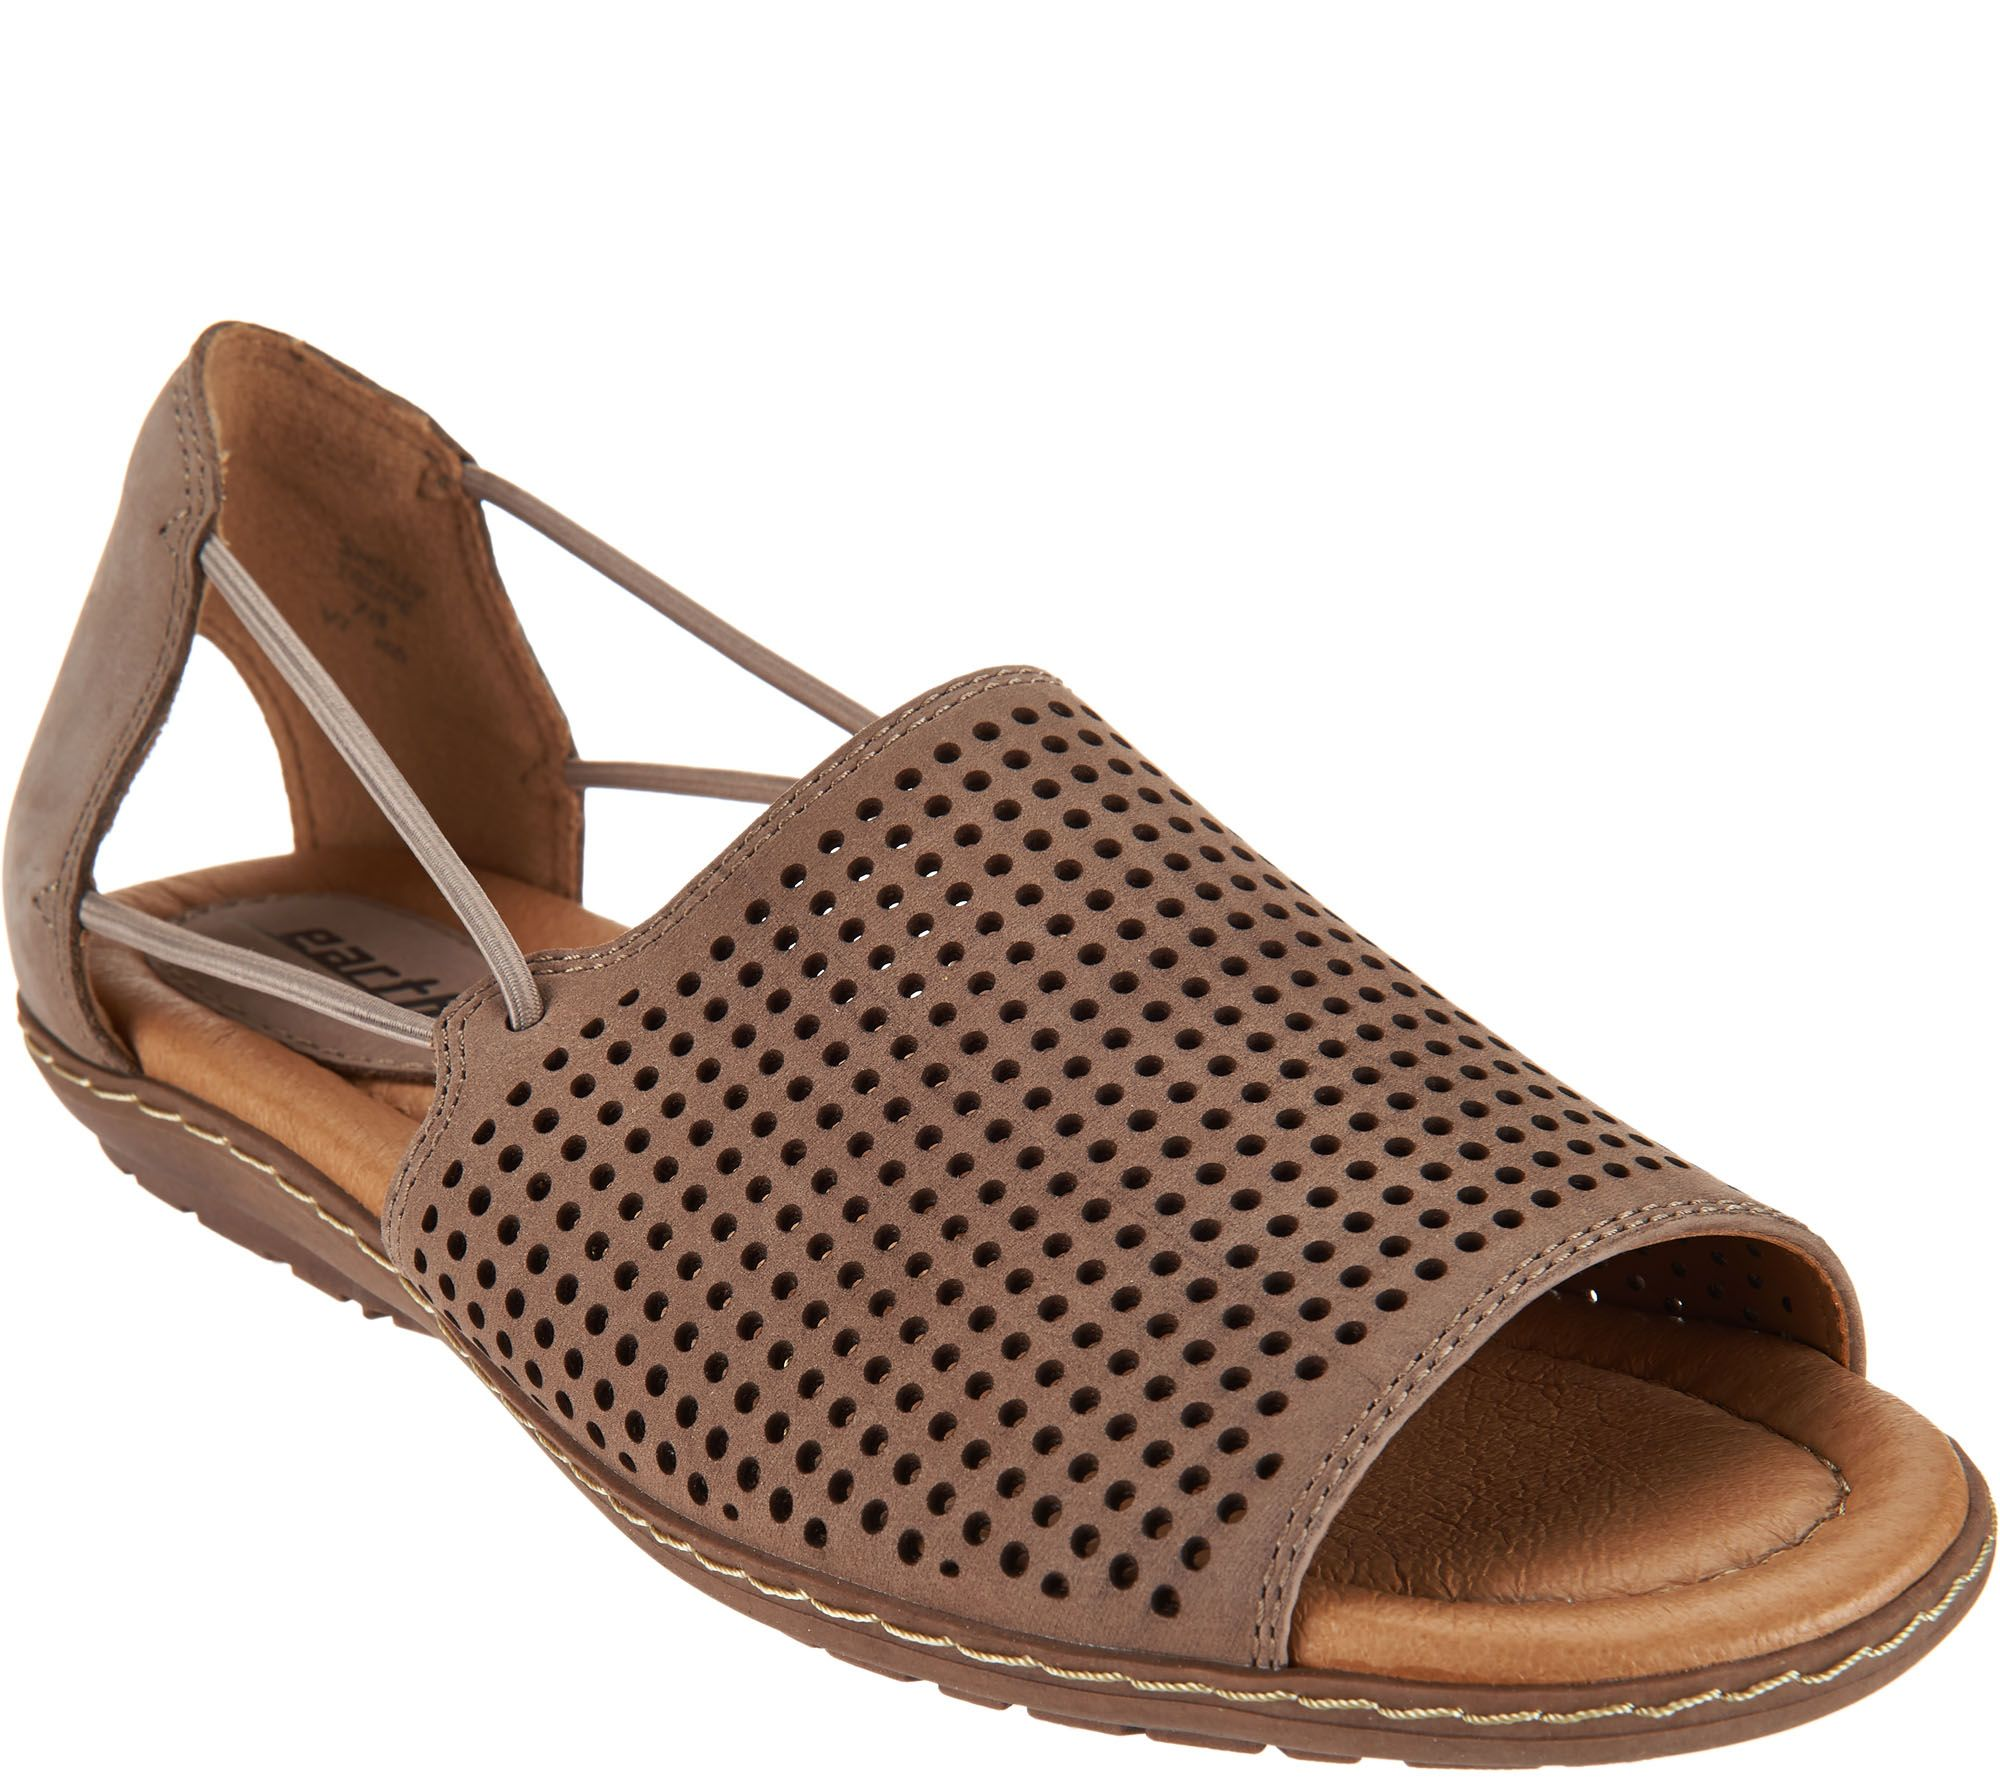 Black earth sandals - Earth Nubuck Leather Perforated Sandals Shelly A289311